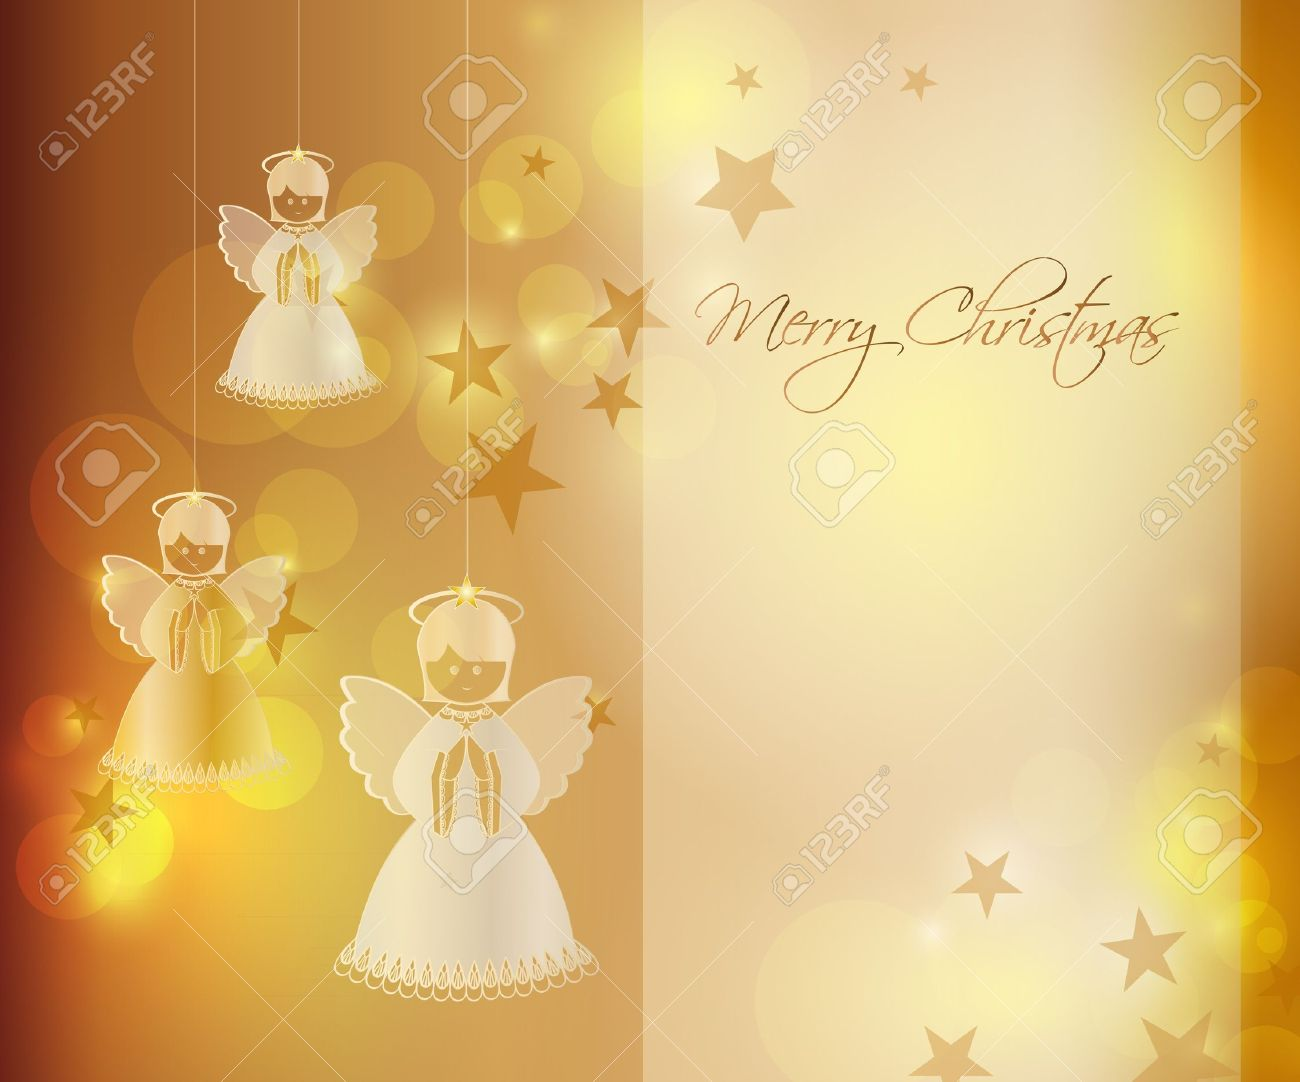 Angels Christmas Background.Merry Christmas Background With An Angel